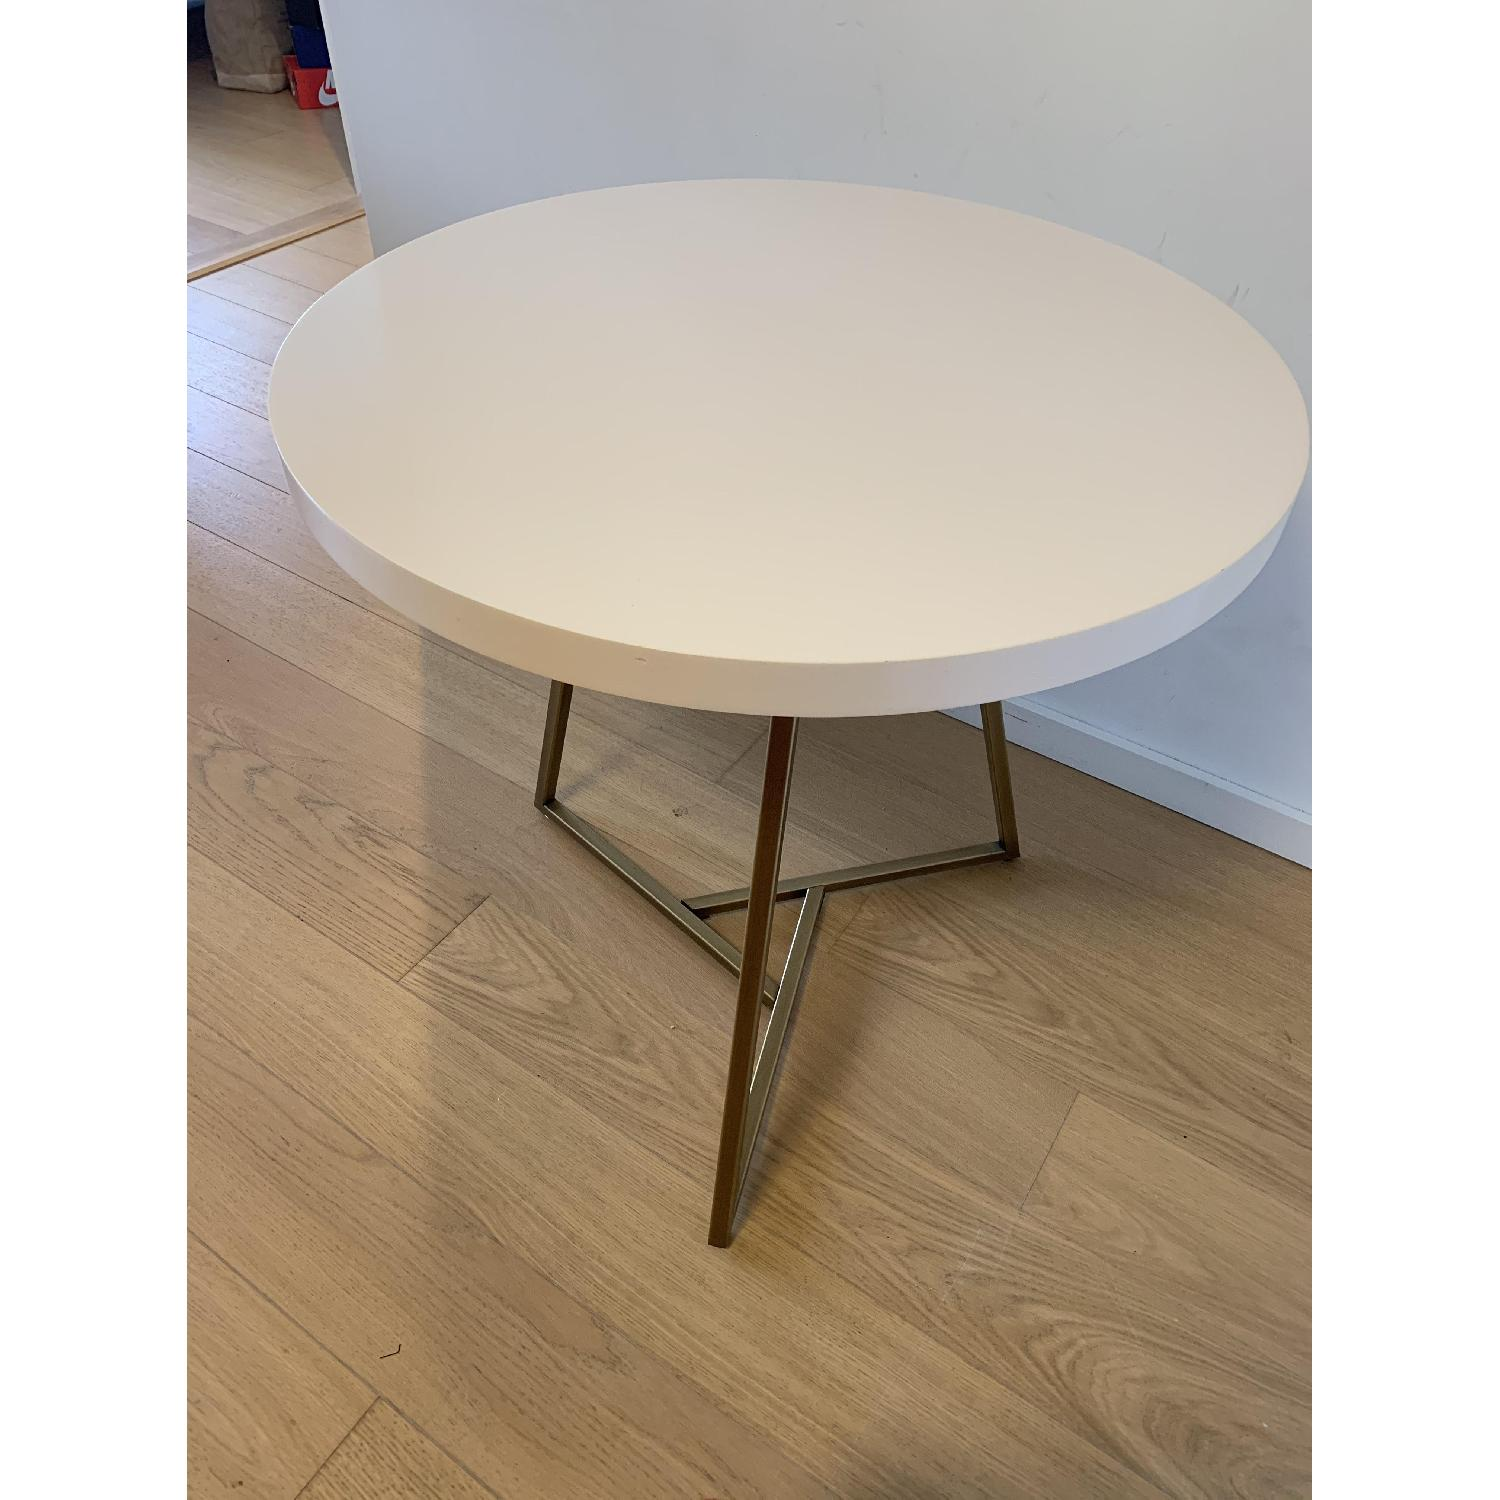 West Elm Lacquer Top Cafe Table in White/Antique Brass